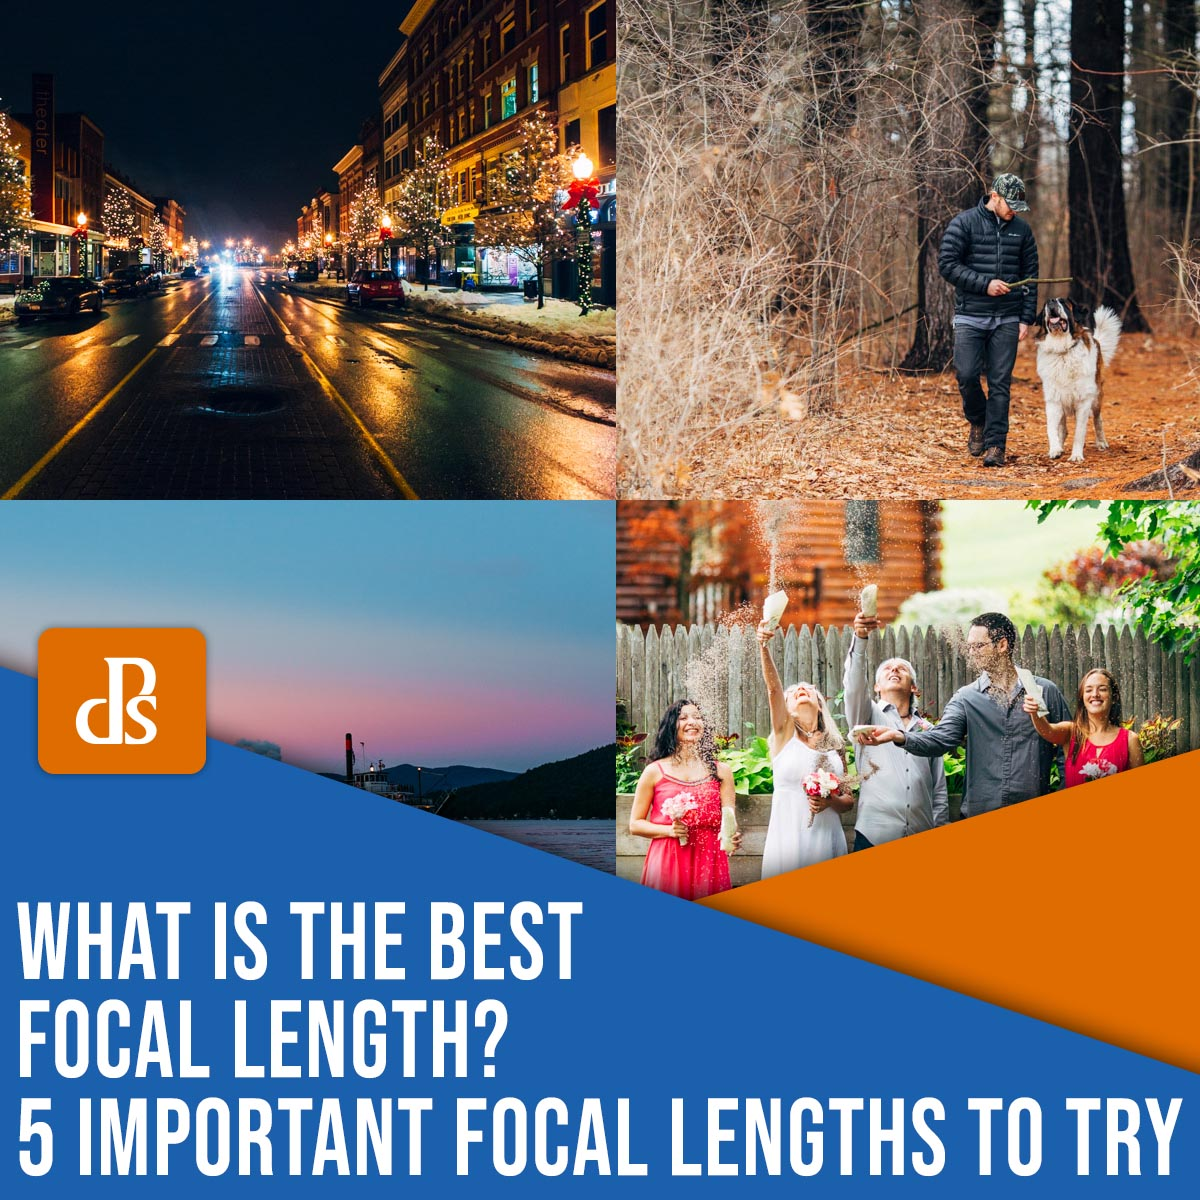 what is the best focal length? 5 important focal lengths to try